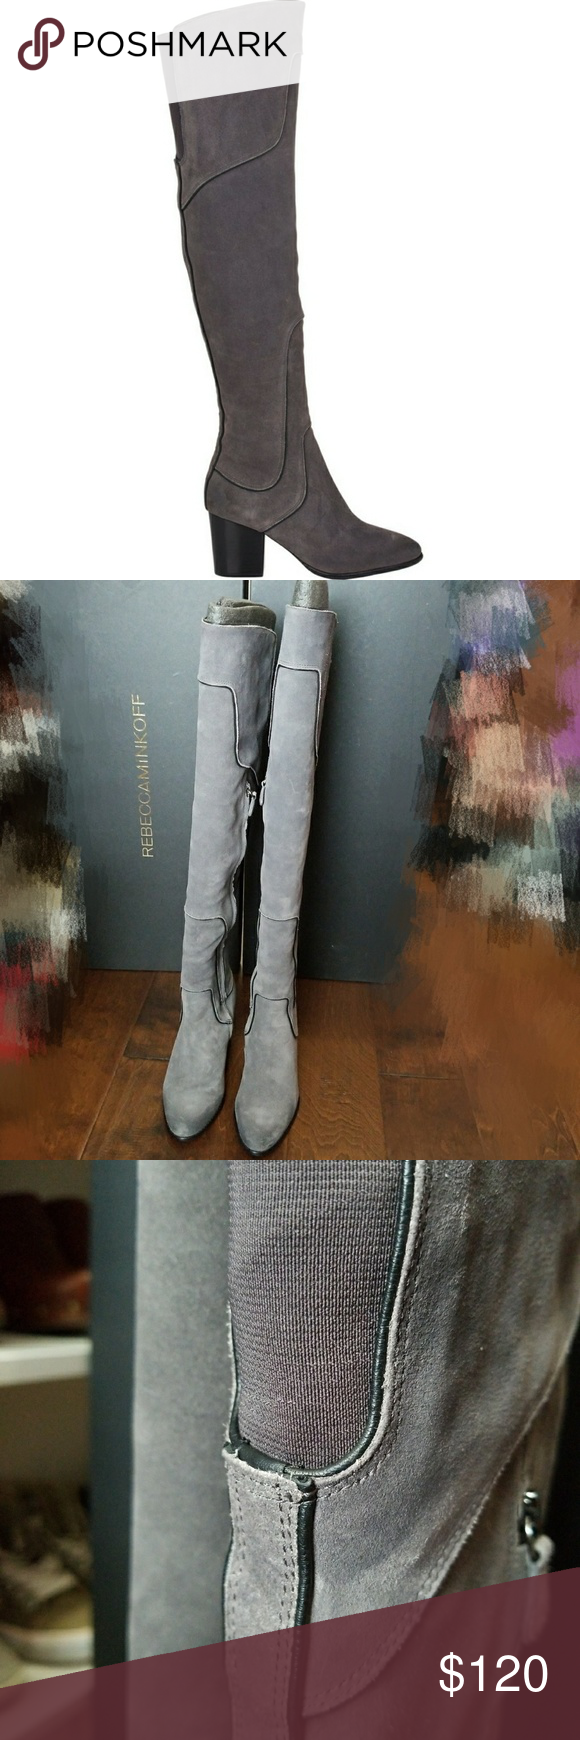 dc22cf36040 Rebecca Minkoff Blessing boots Grey Charcoal Suede Over The Knee Boots  (only worn once) Rebecca Minkoff Shoes Over the Knee Boots